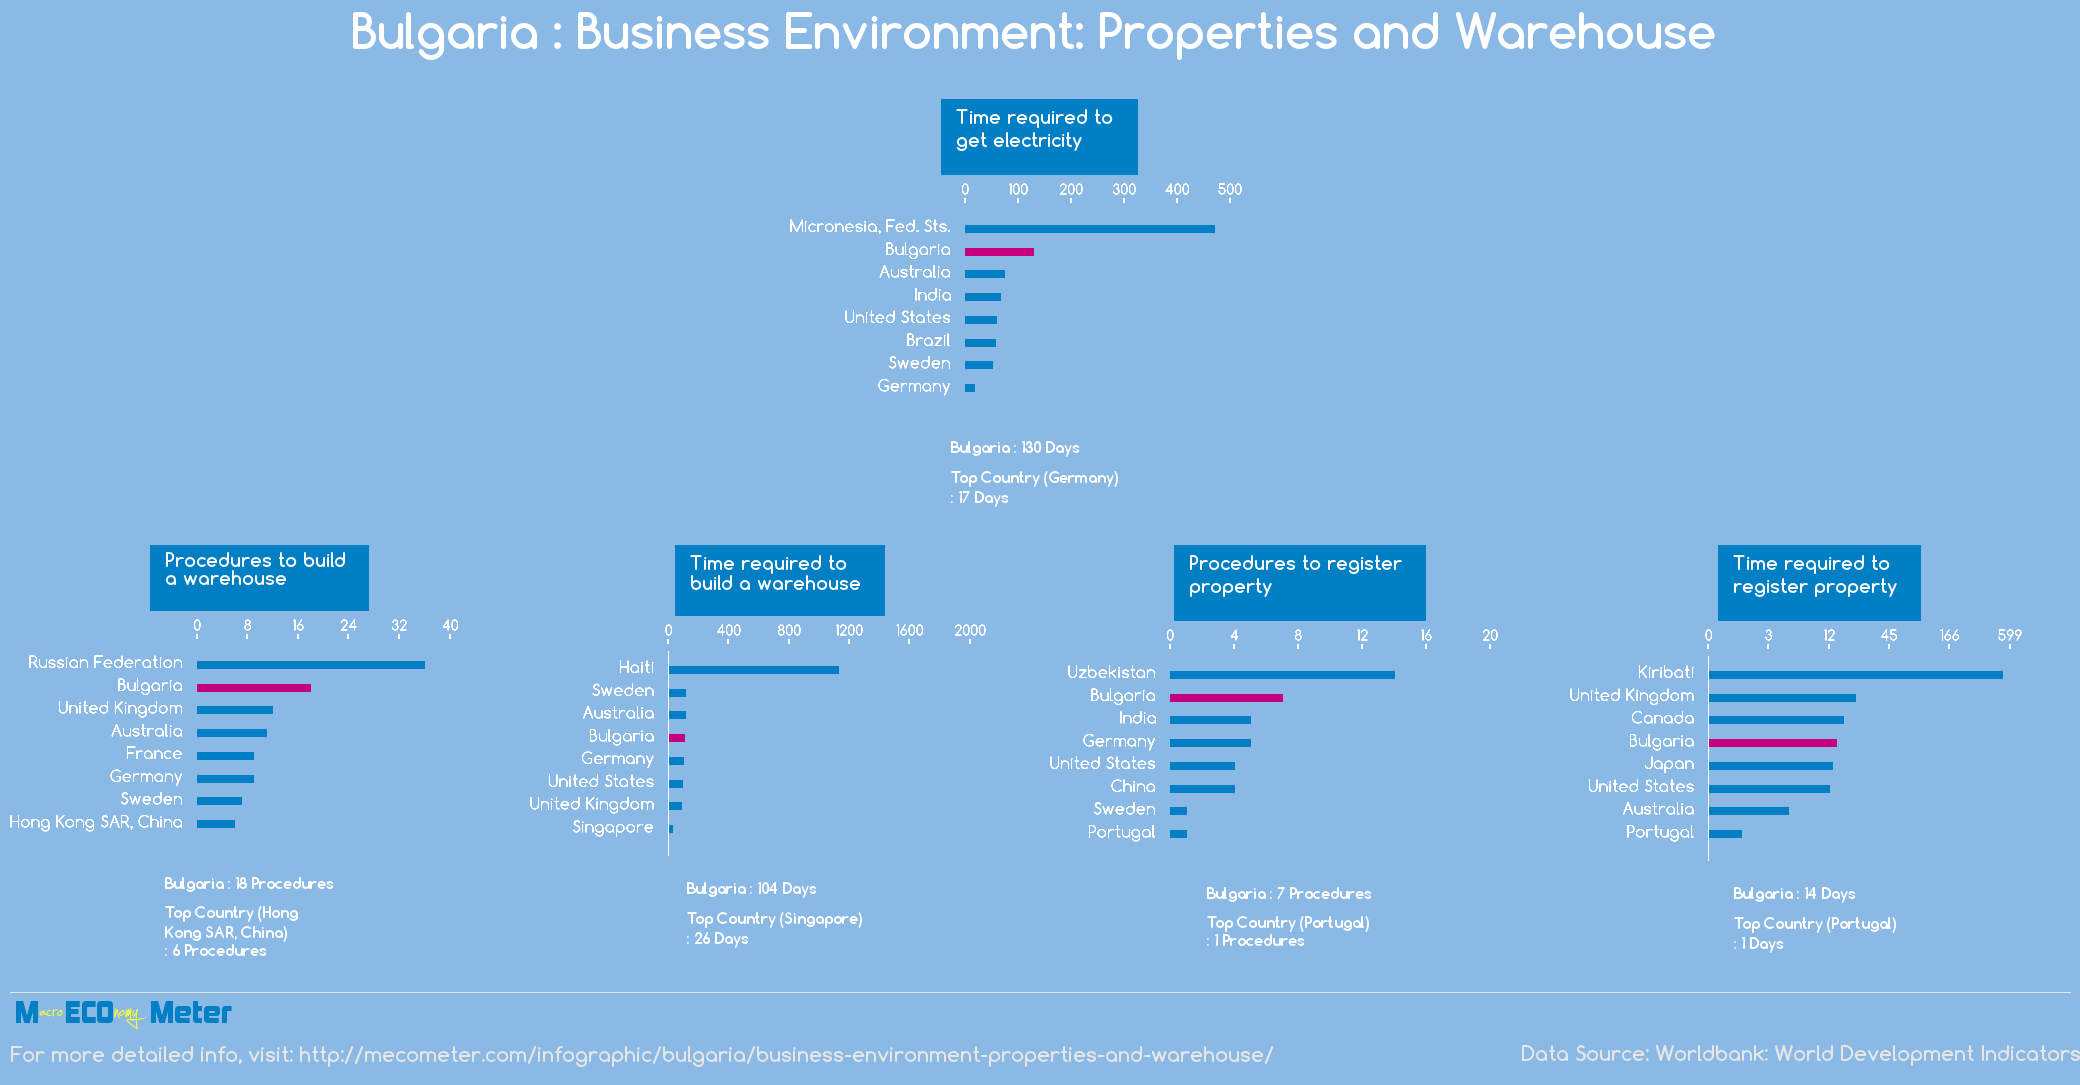 Bulgaria : Business Environment: Properties and Warehouse